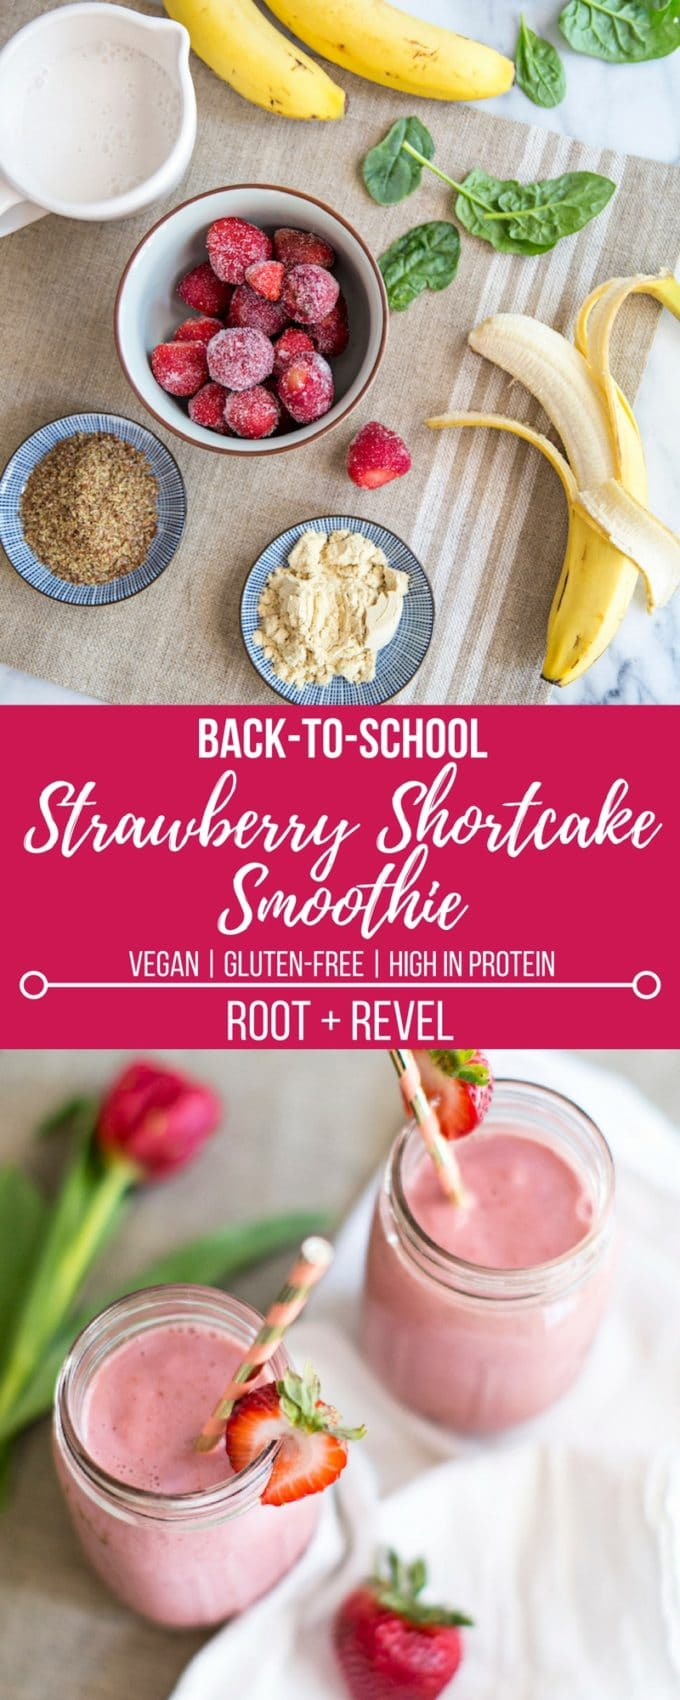 for back-to-school with this vegan strawberry shortcake smoothie ...